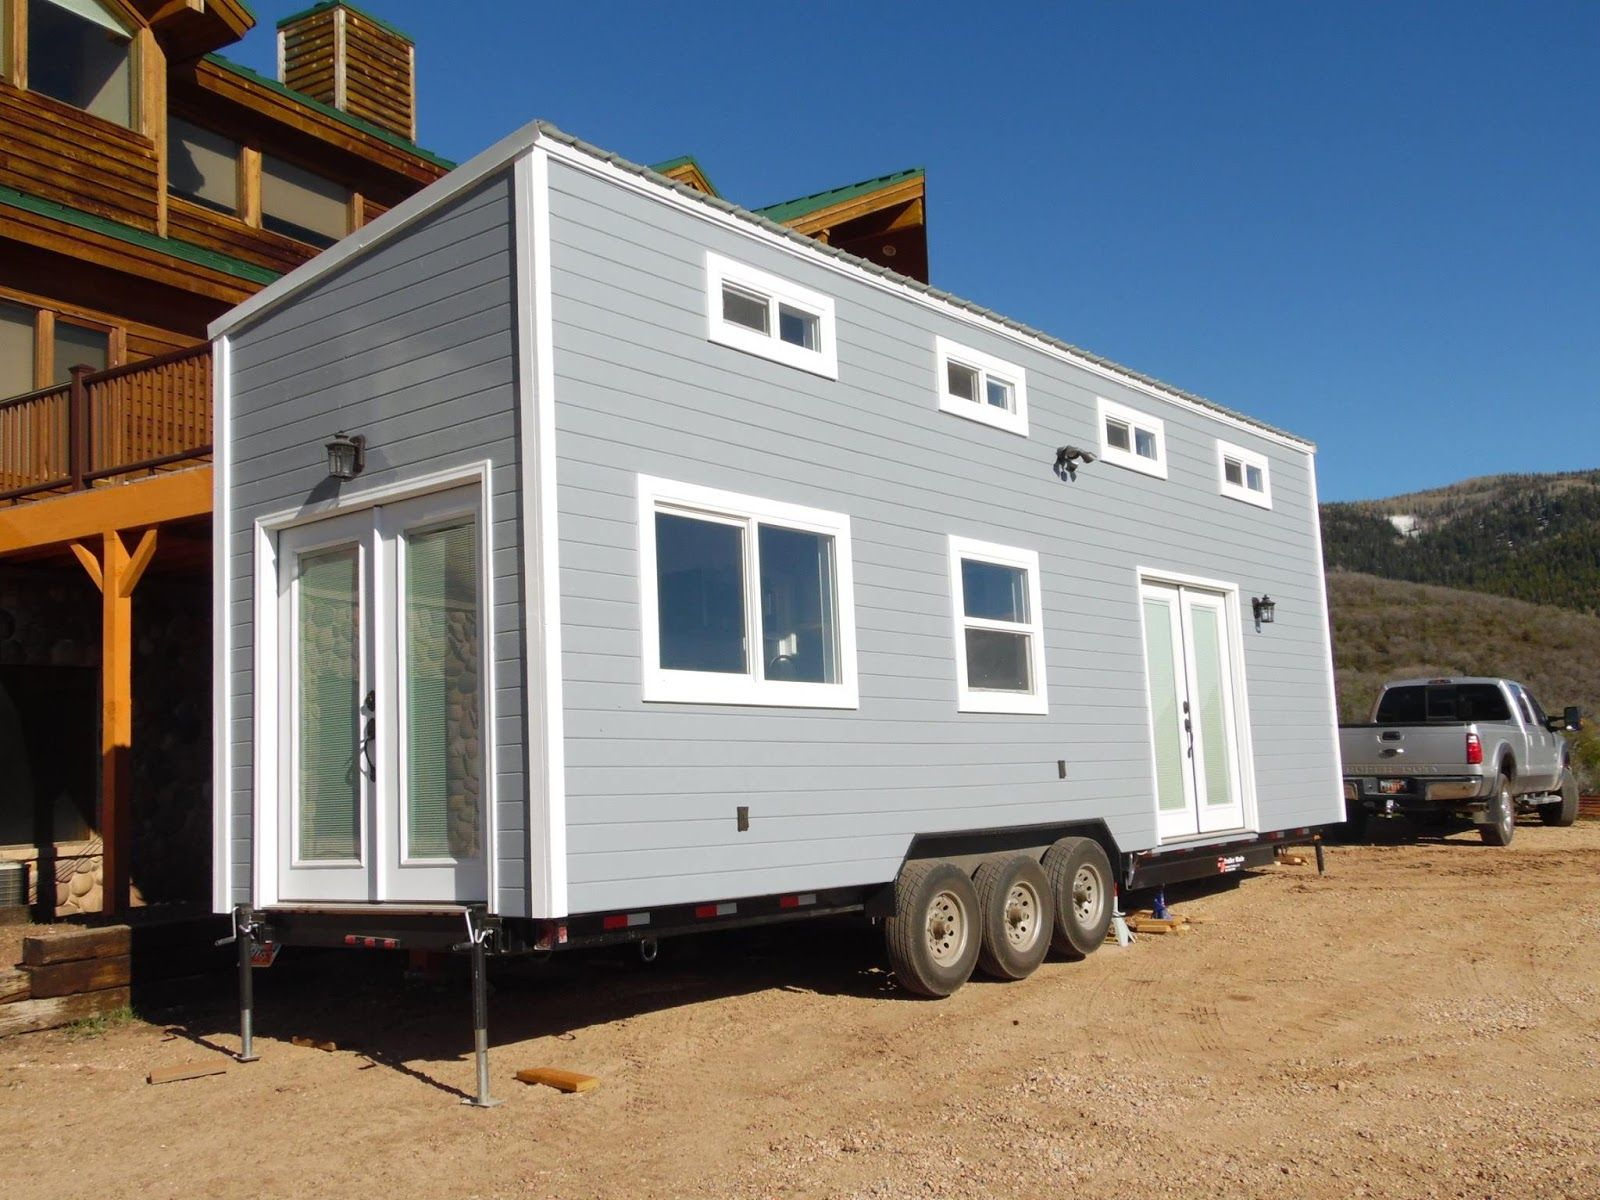 The Park City By Upper Valley Tiny Homes Of Pleasant Grove Utah A 256